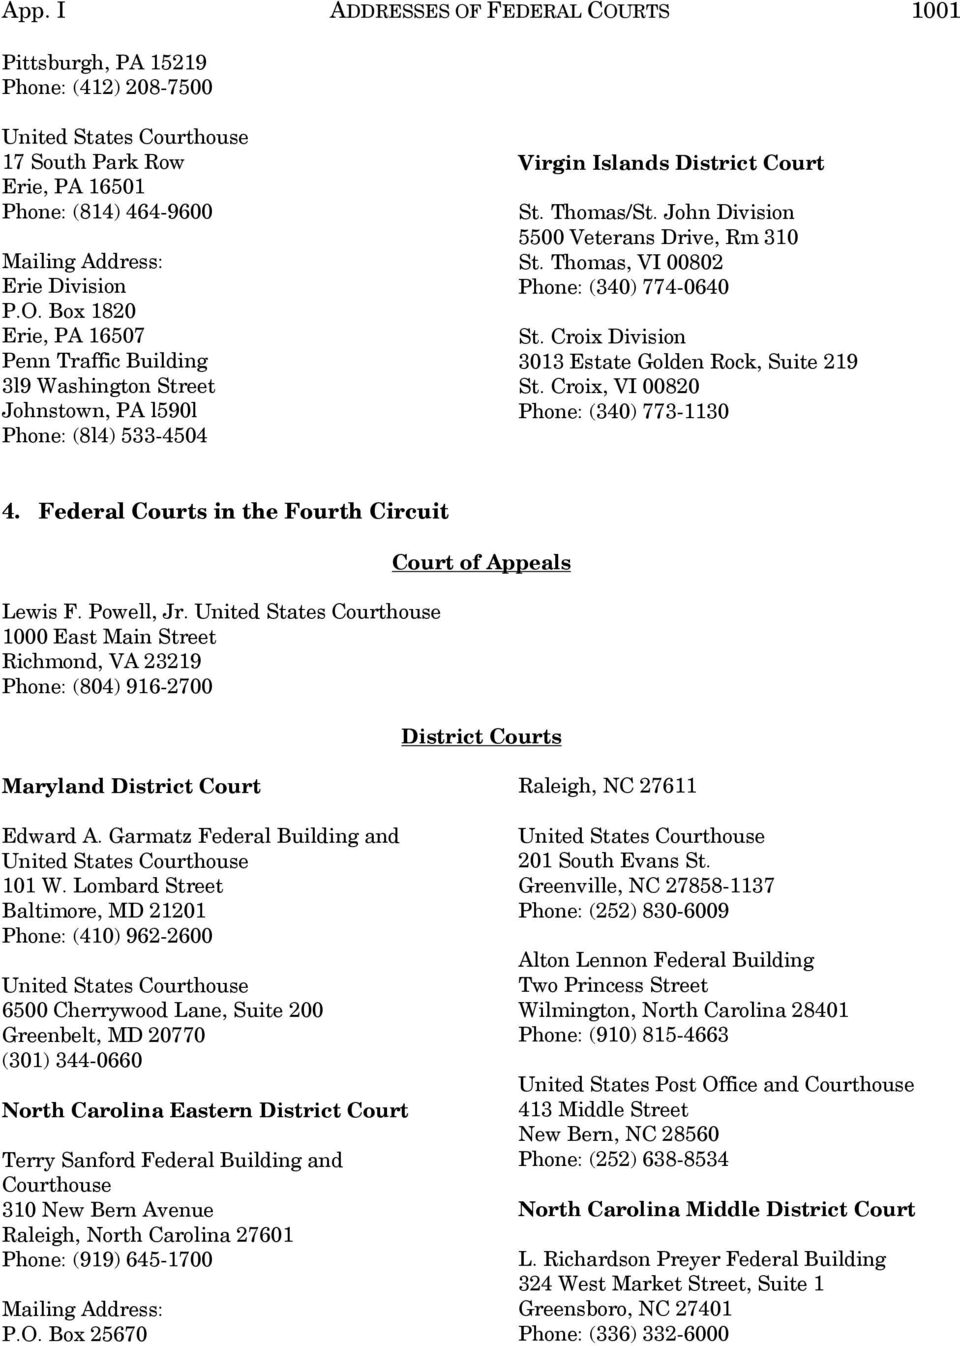 Federal Courts in the Fourth Circuit Lewis F. Powell, Jr. 1000 East Main Street Richmond, VA 23219 Phone: (804) 916-2700 Court of Appeals District Courts Maryland District Court Edward A.